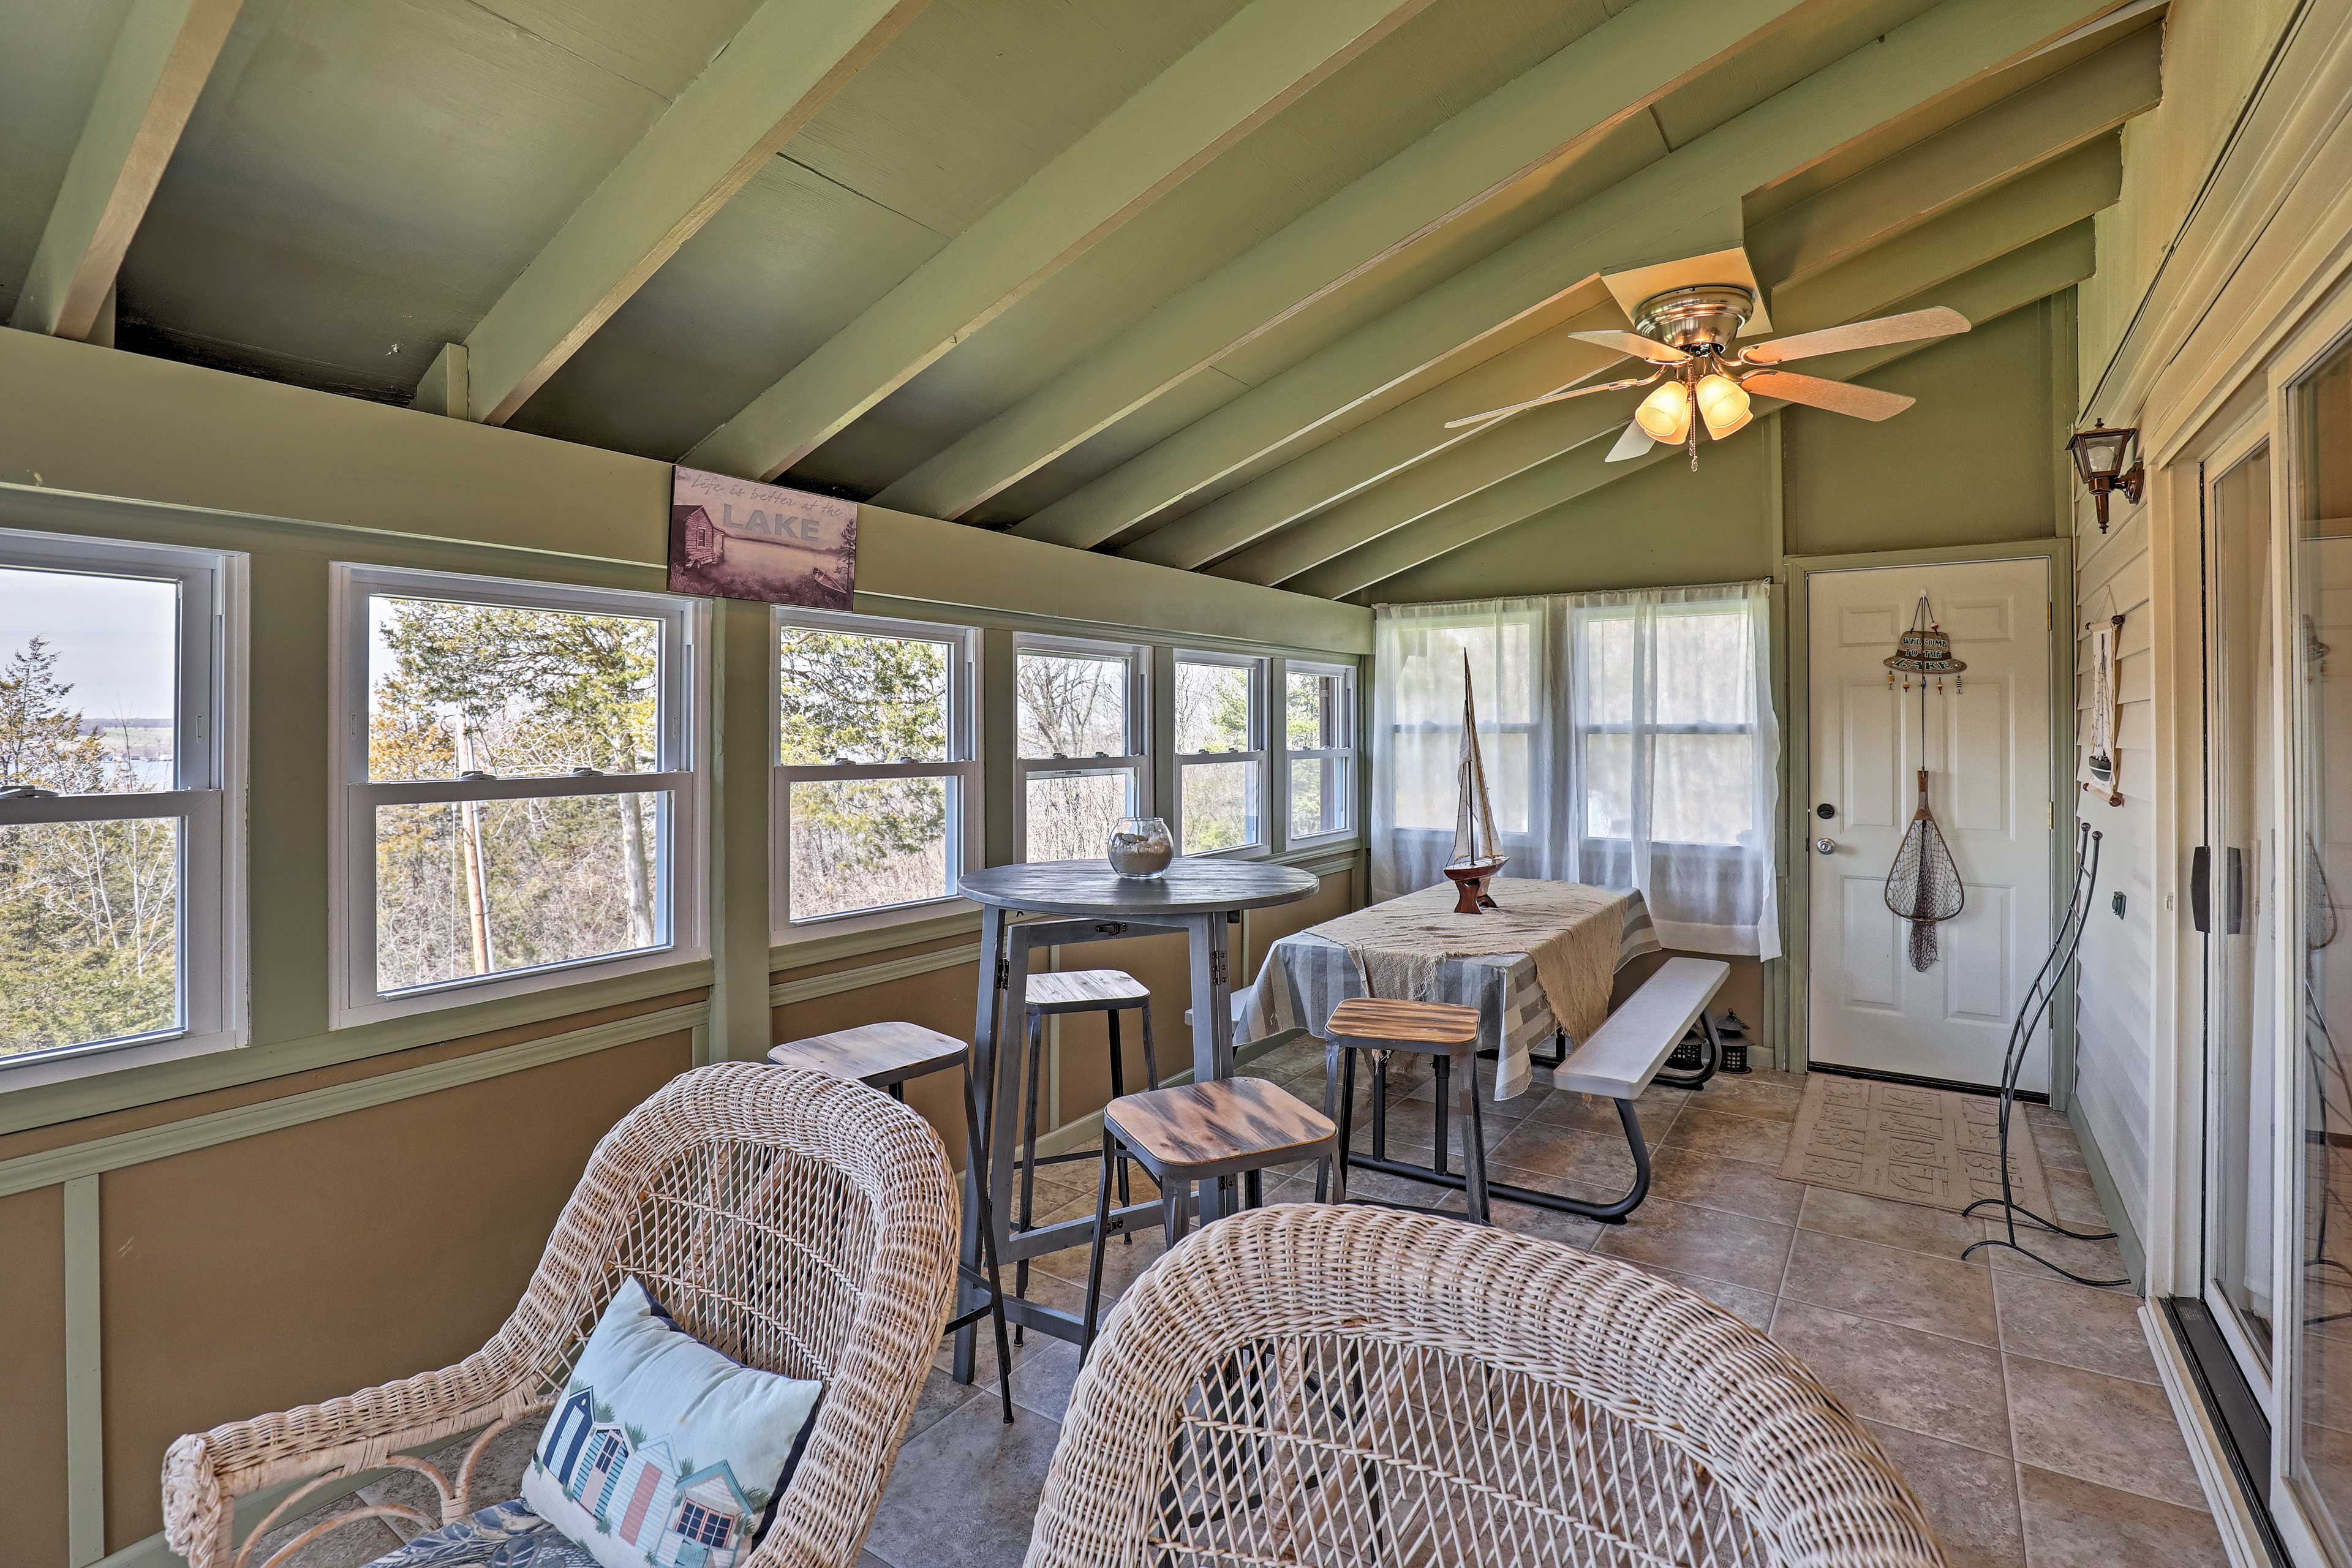 It's the perfect space to sip coffee and enjoy the lake views.